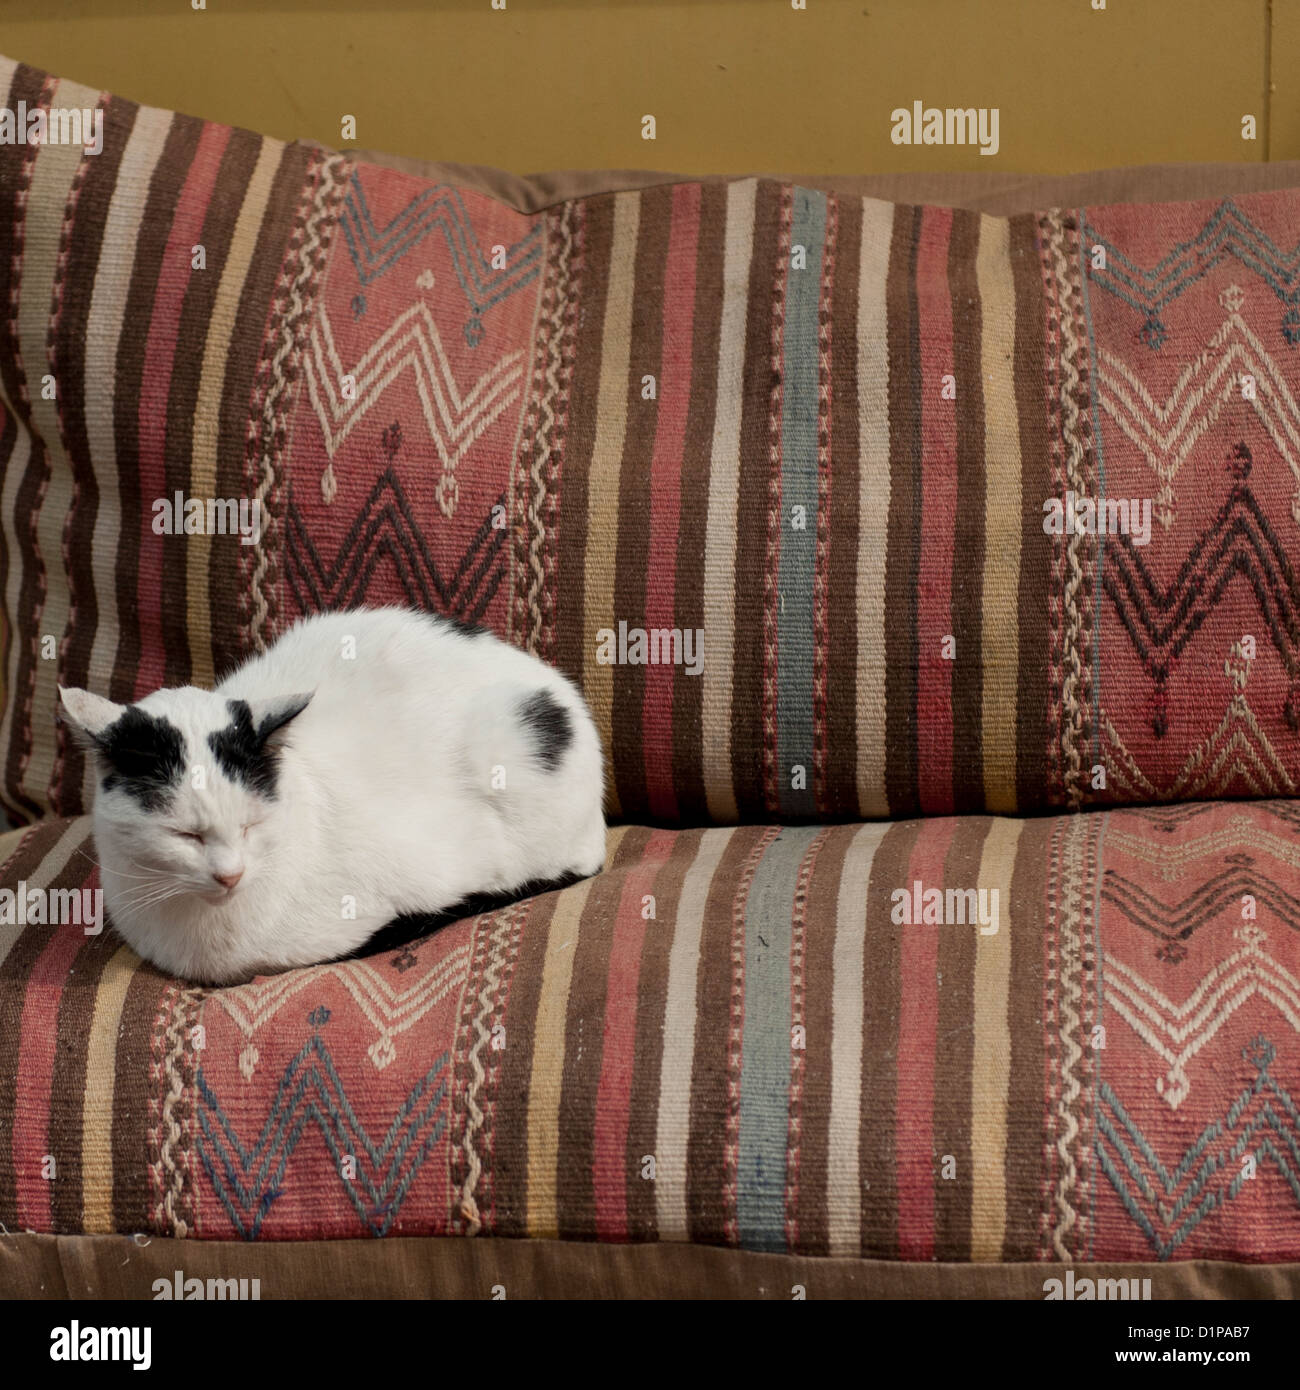 Cat sitting on a couch, Istanbul, Turkey - Stock Image